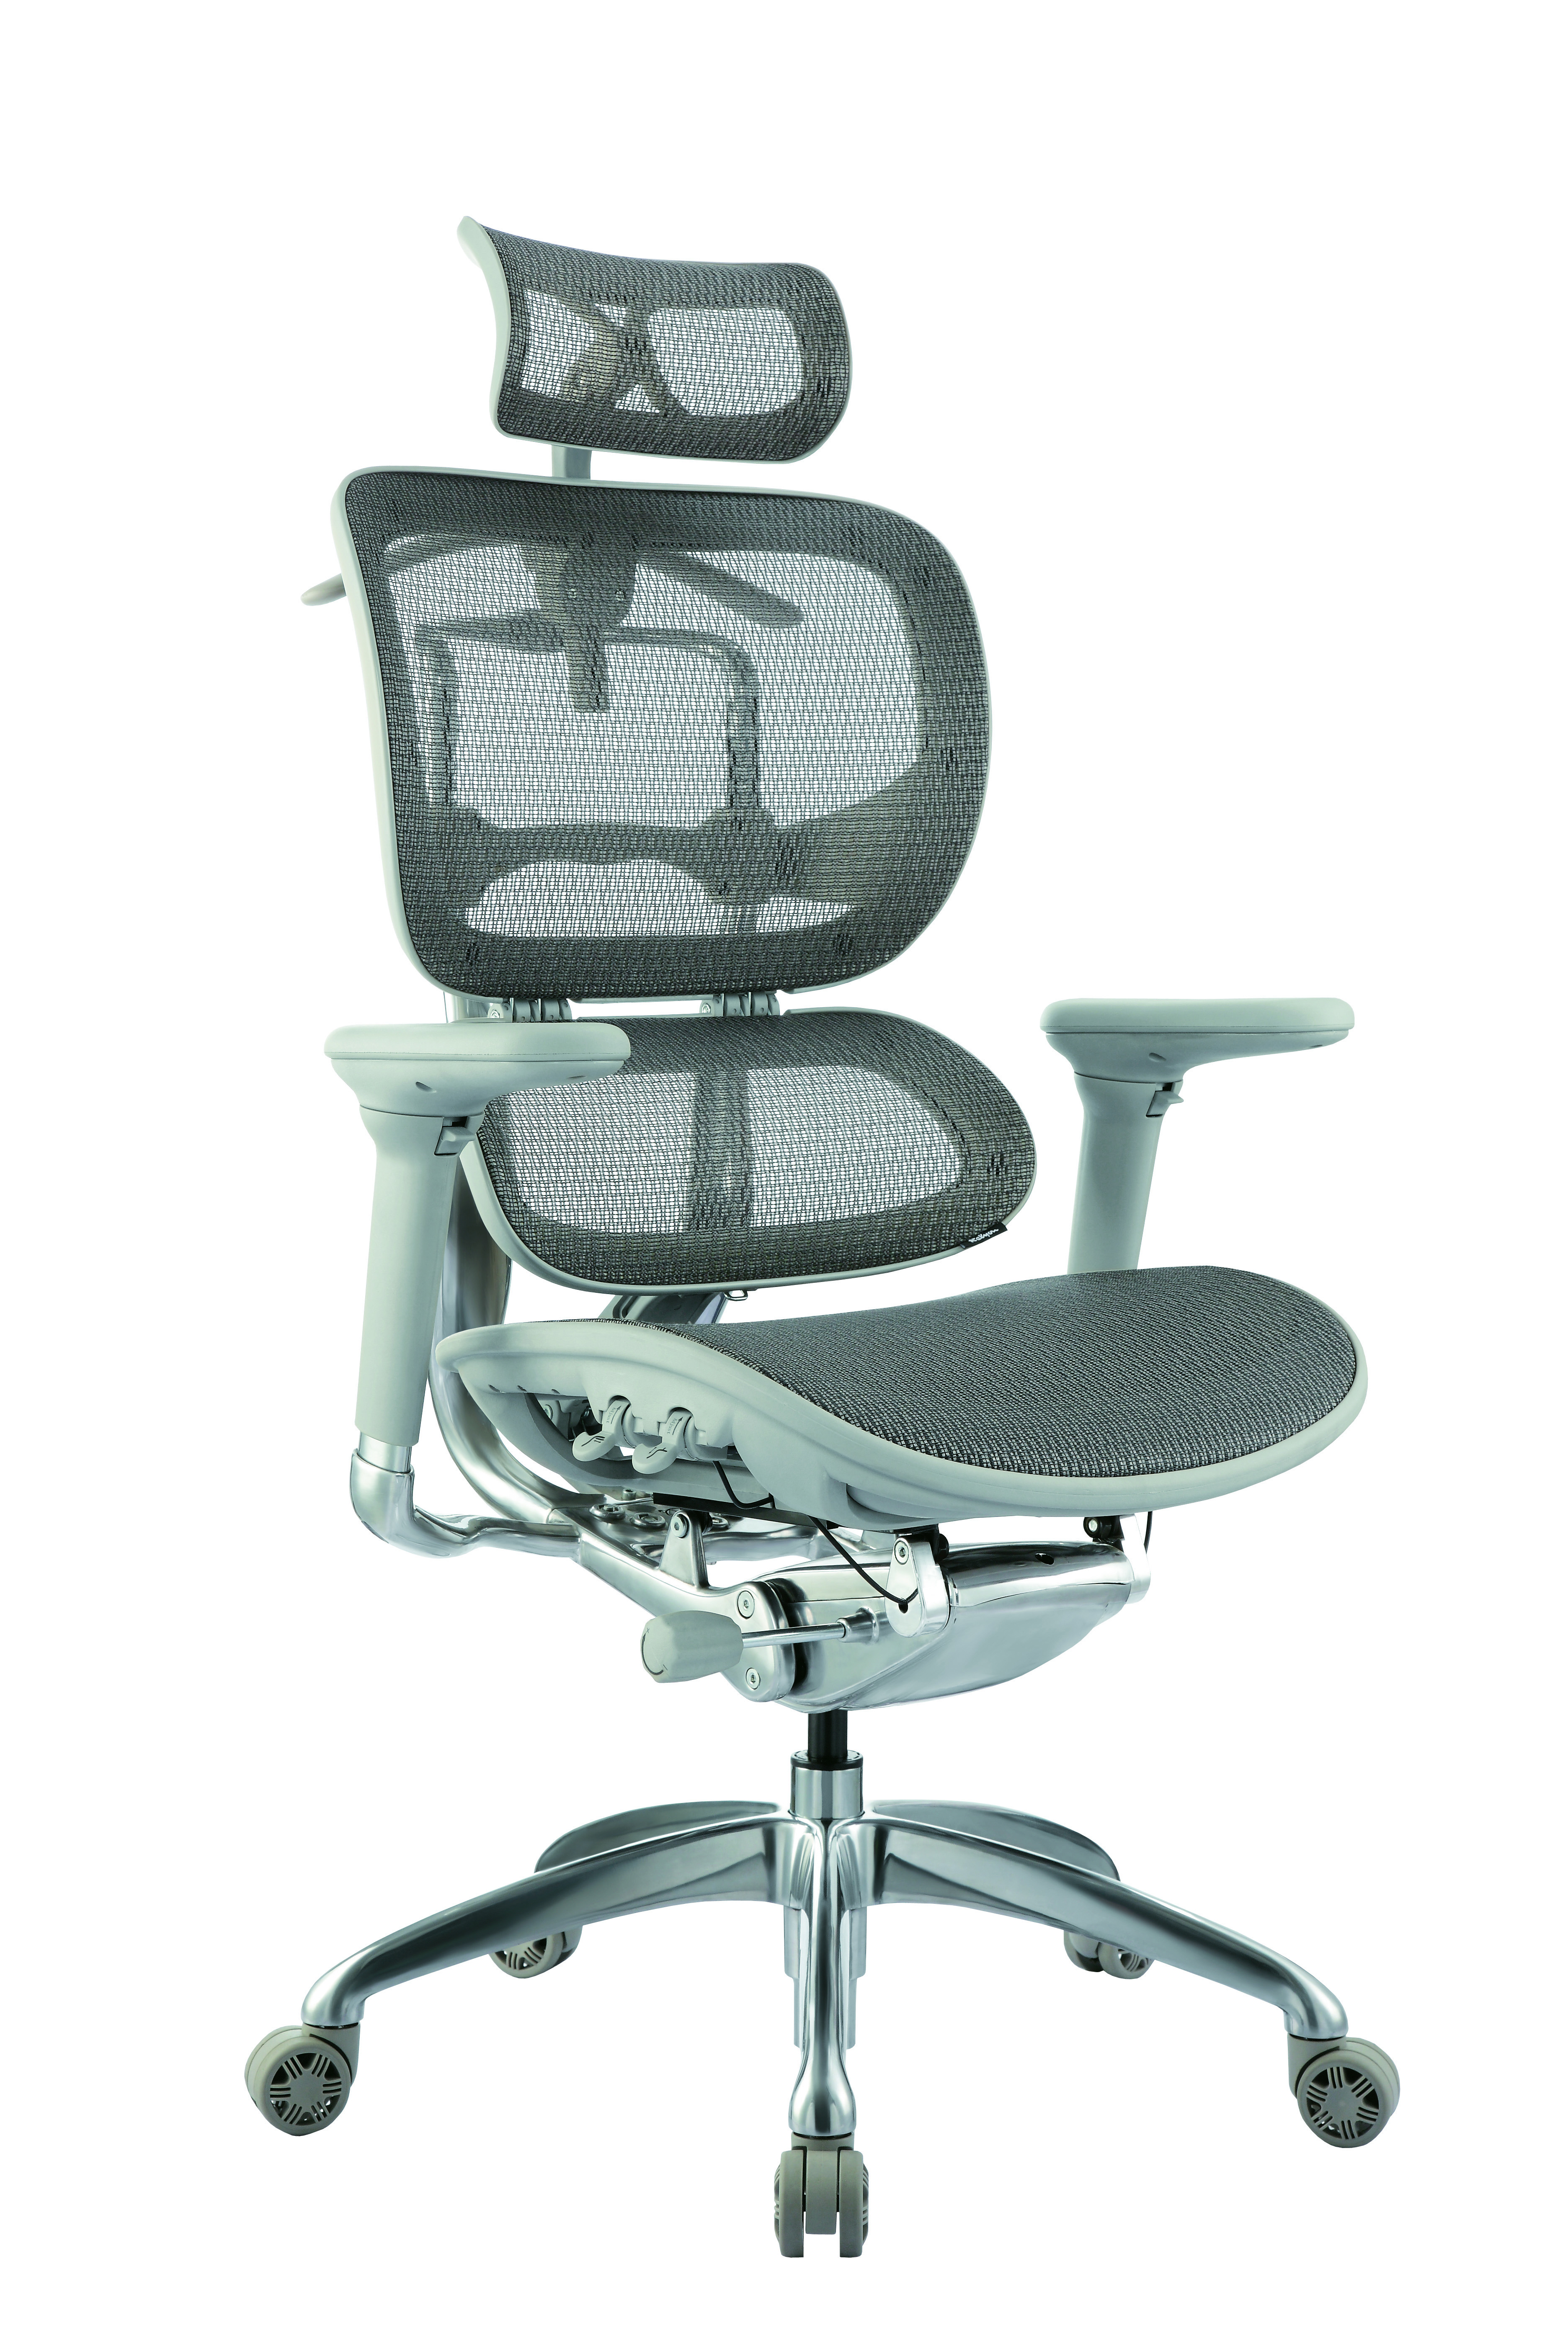 Butterfly Office Chair, Task Chair, Office Desk Chair, Corporate